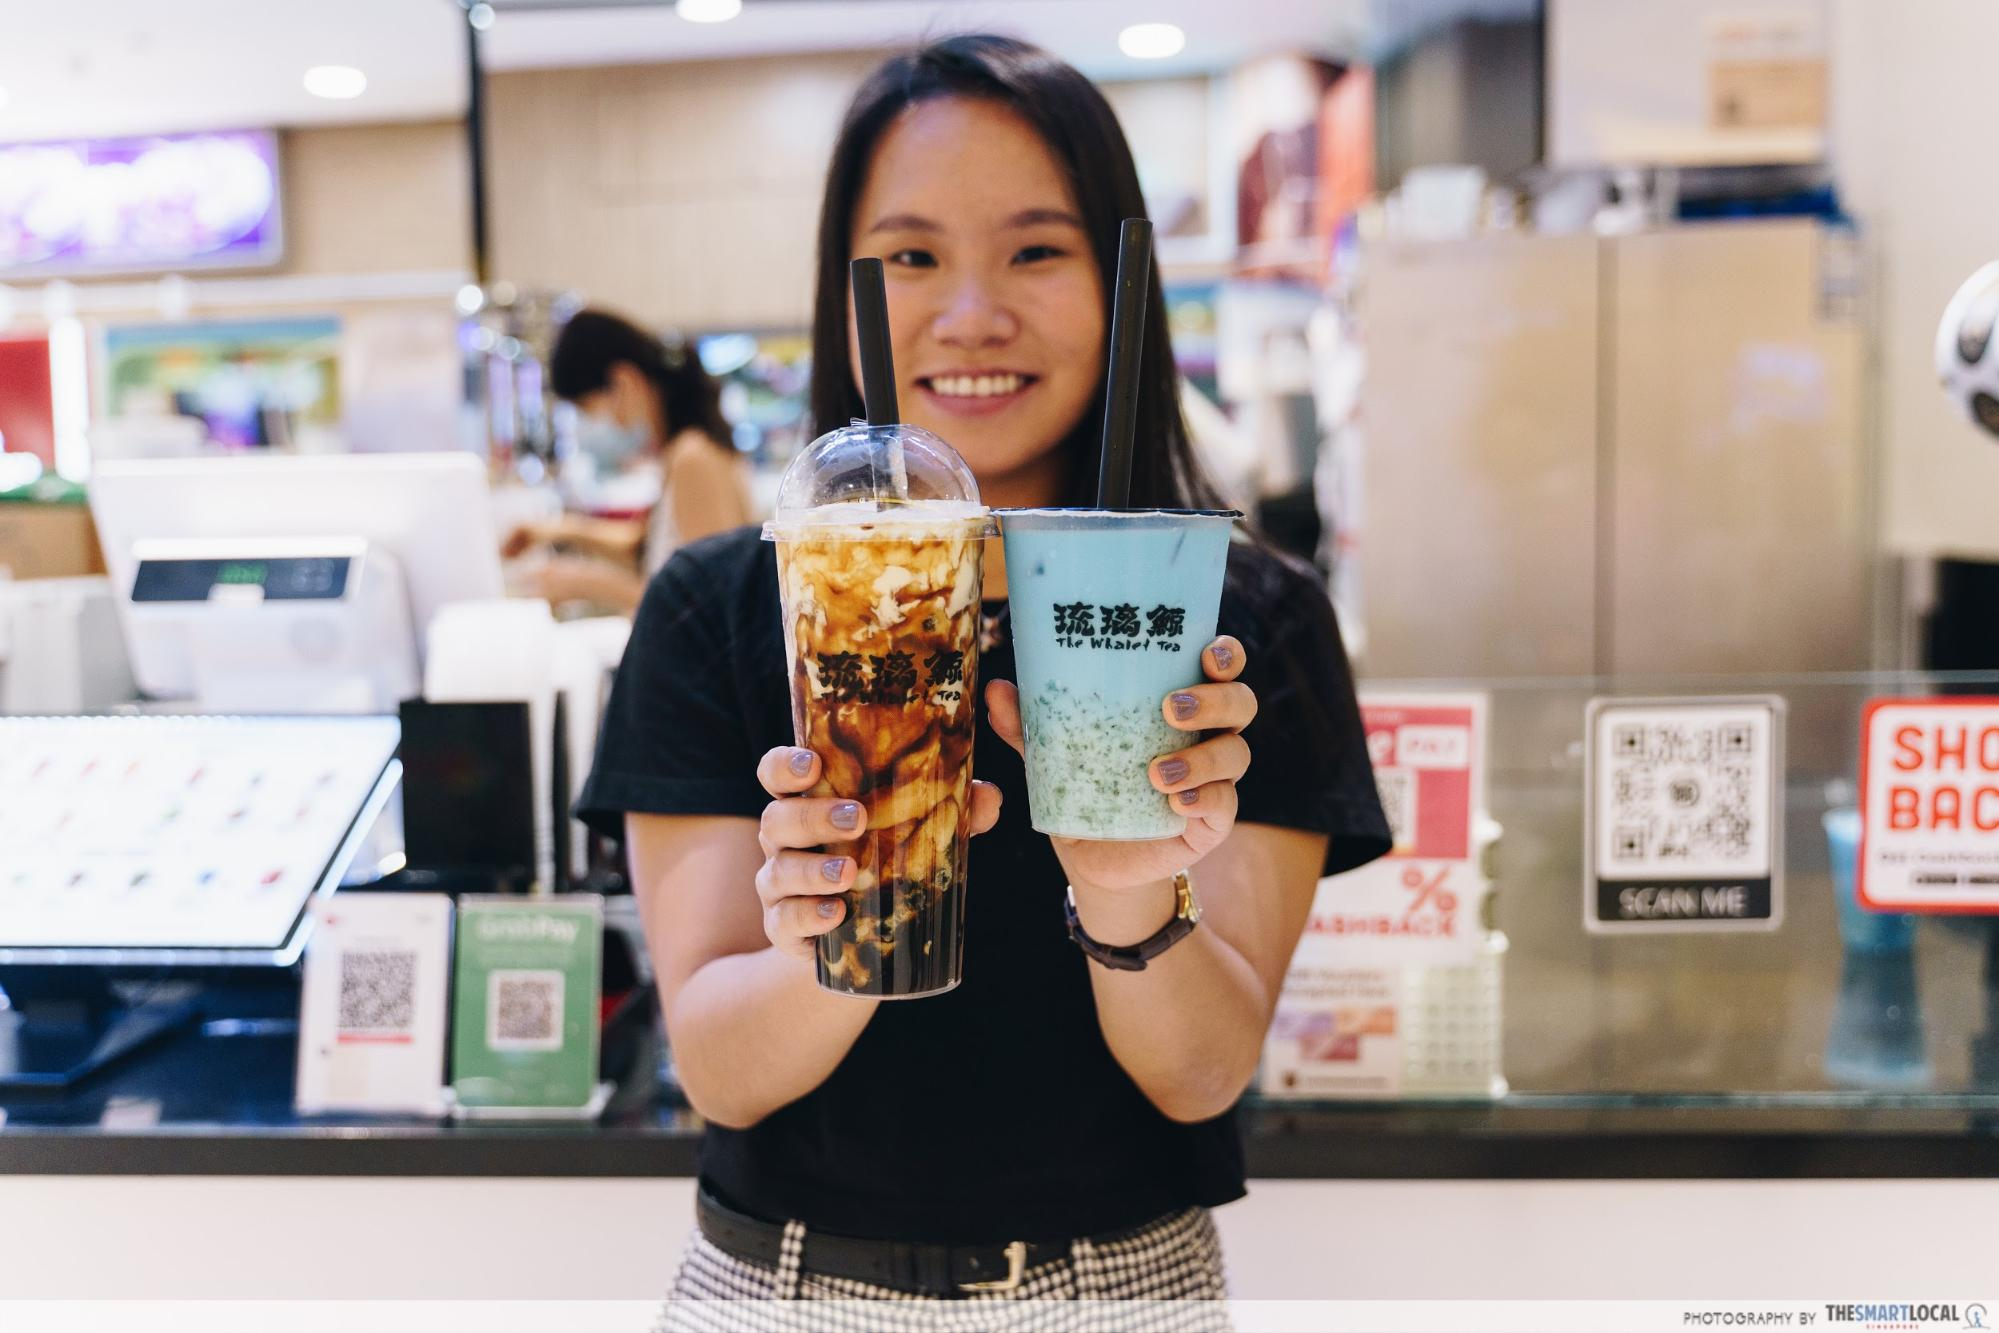 City Square Mall National Day Promos - Whale Tea